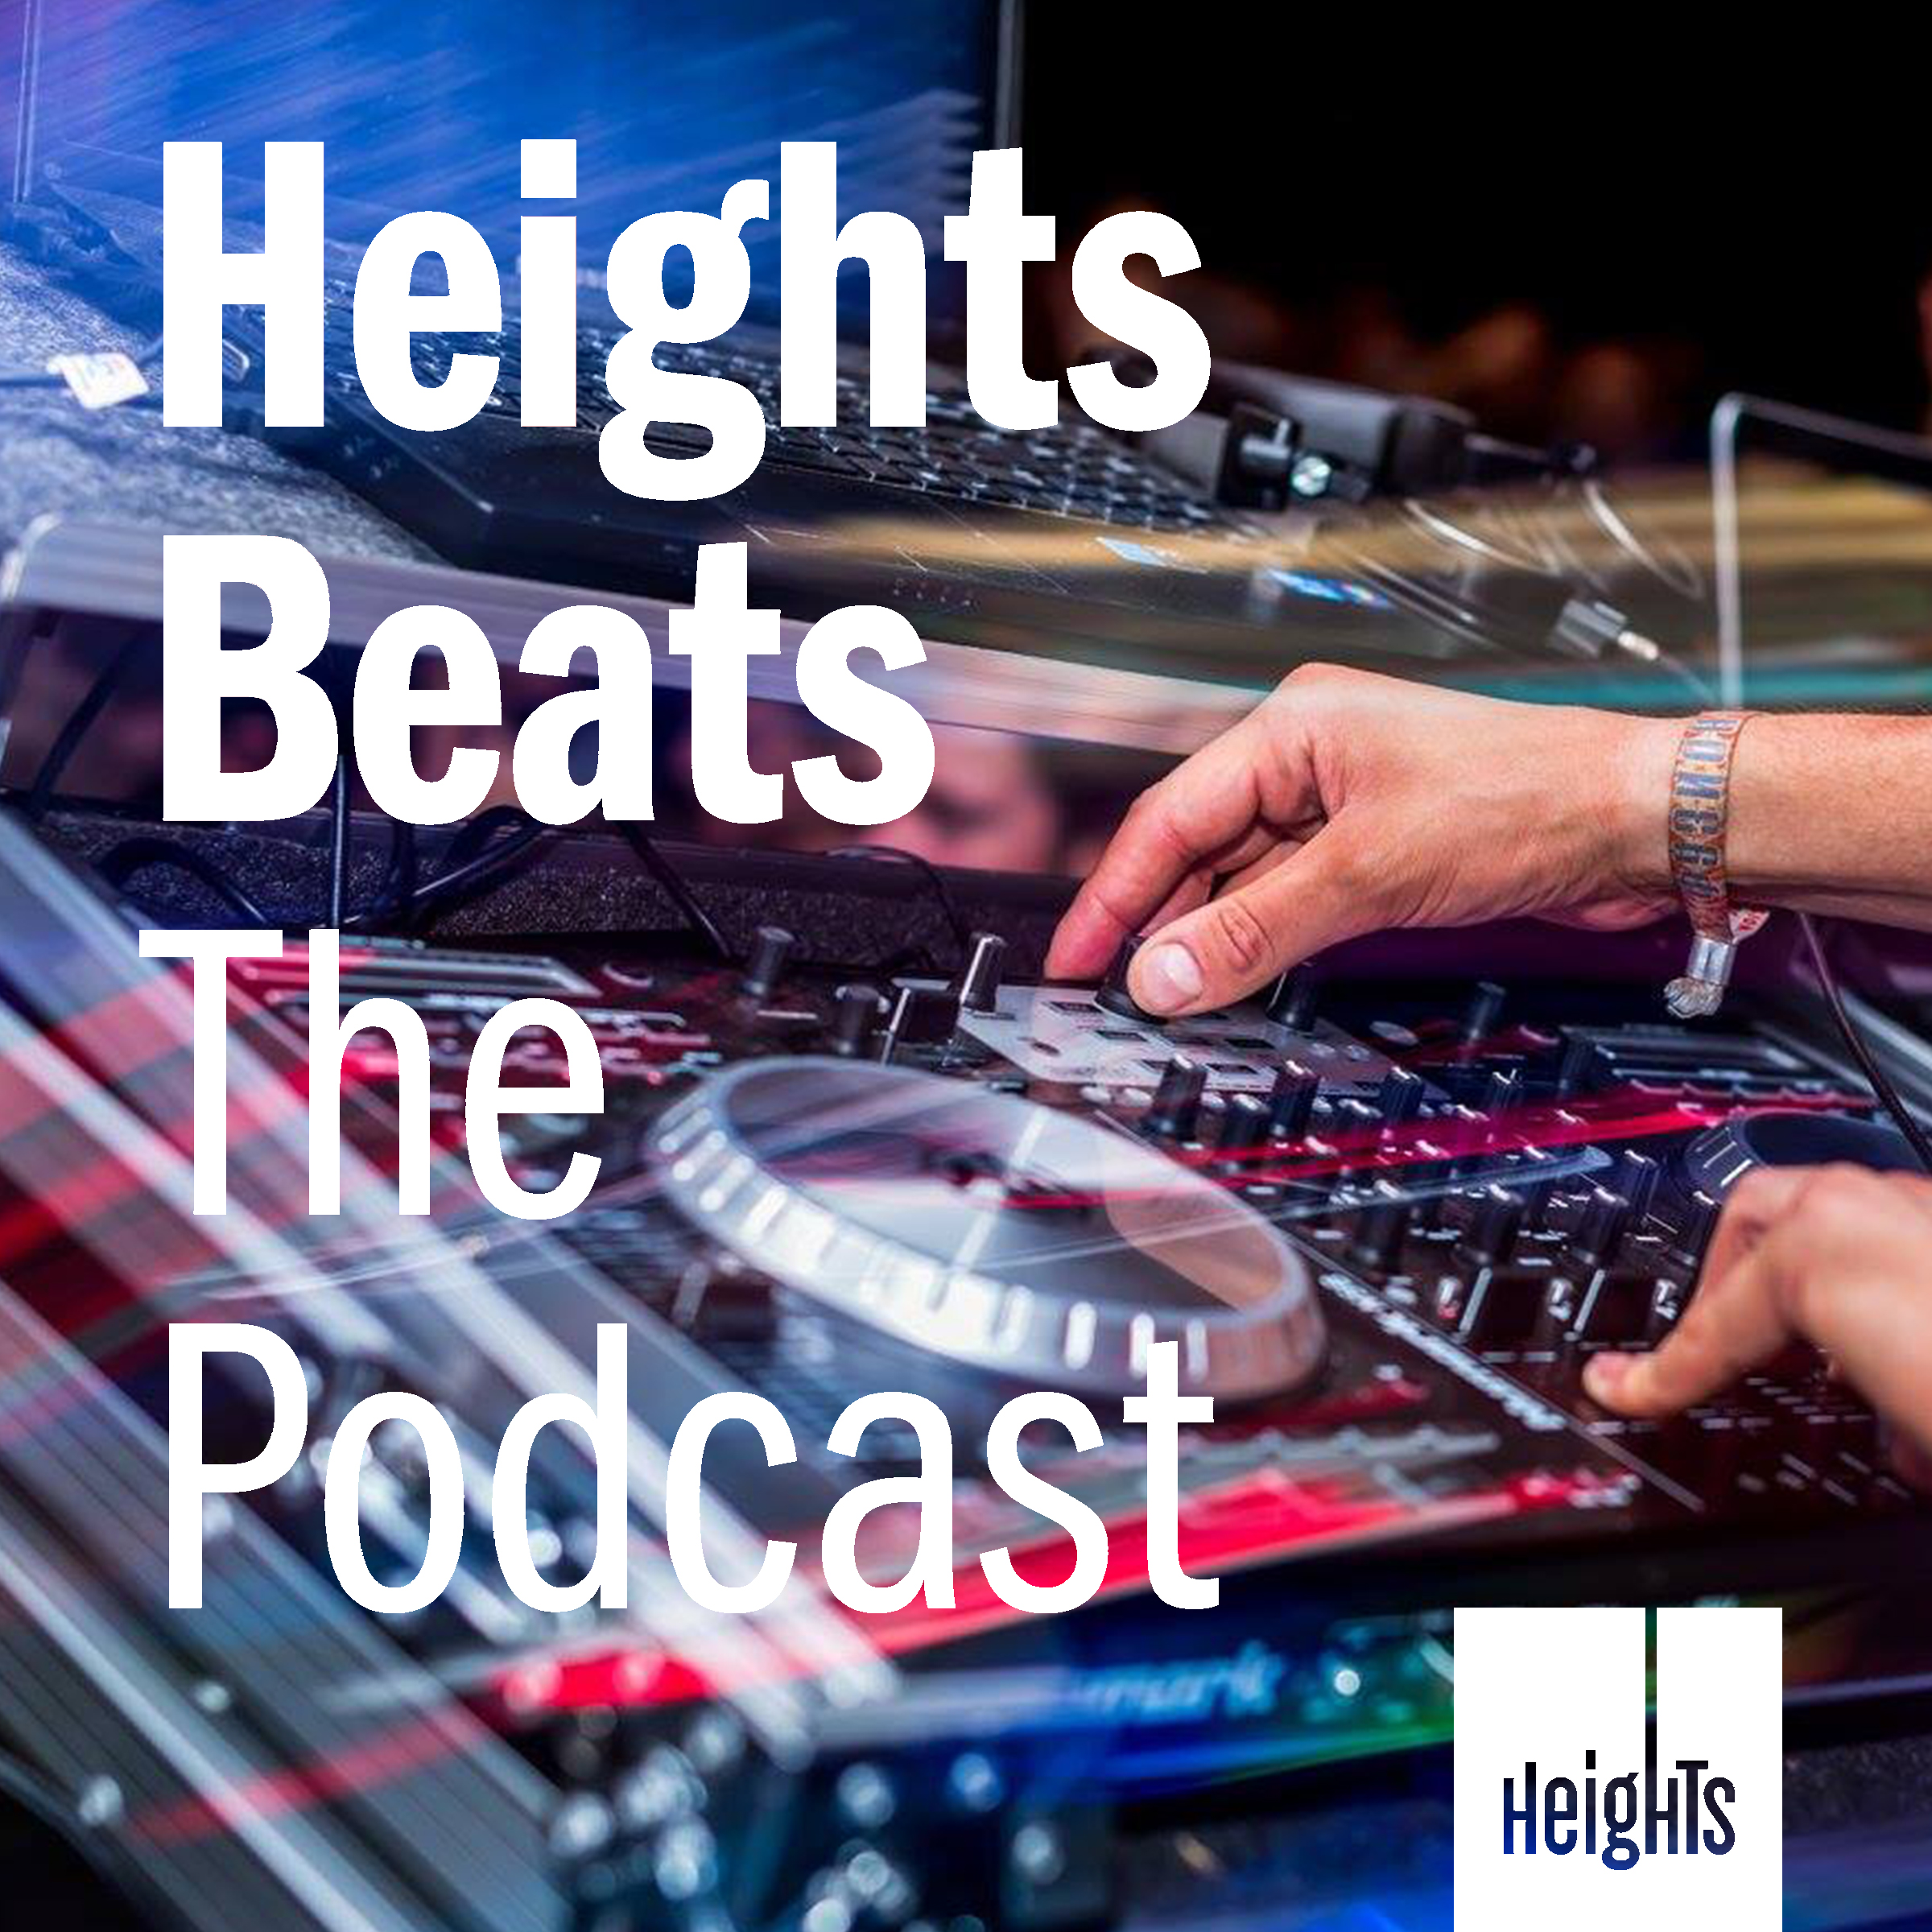 Heights Beats The Podcast